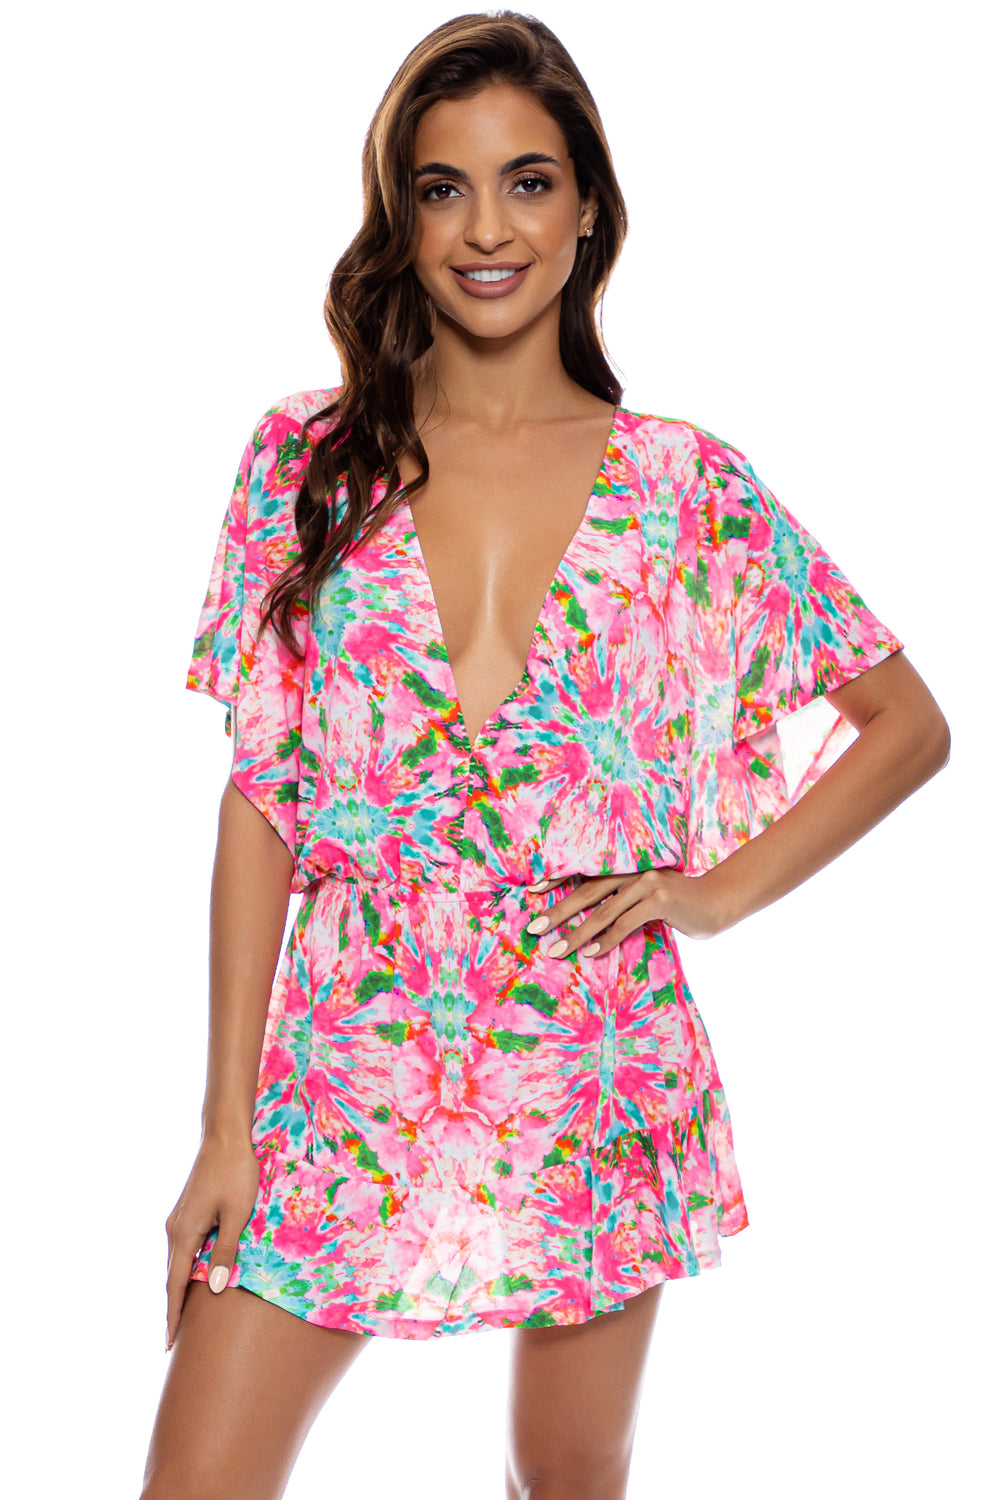 OCEAN DRIVE EUPHORIA - Playera V Neck Ruffle Dress • Multicolor